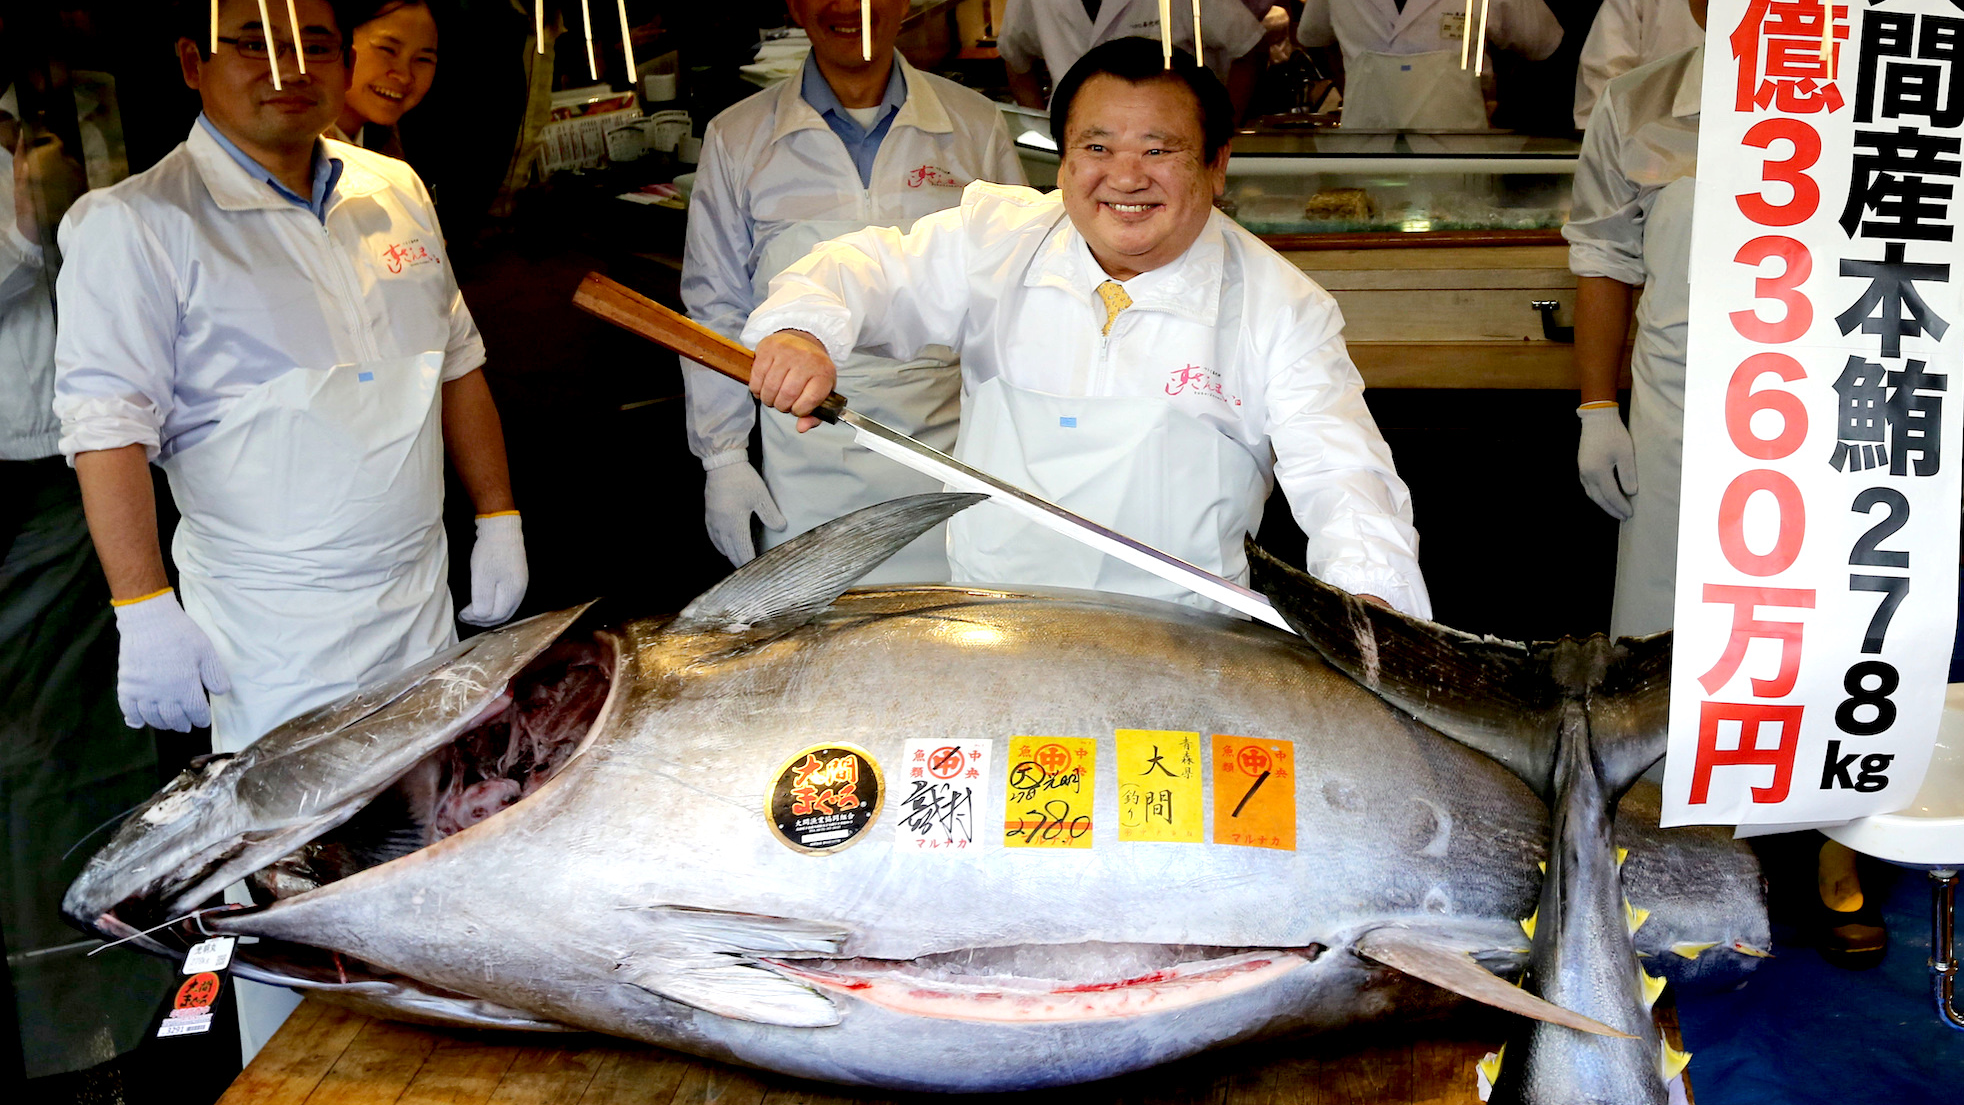 hight resolution of a fish in japan just sold for a record 3 million here s why bluefin tuna is so expensive